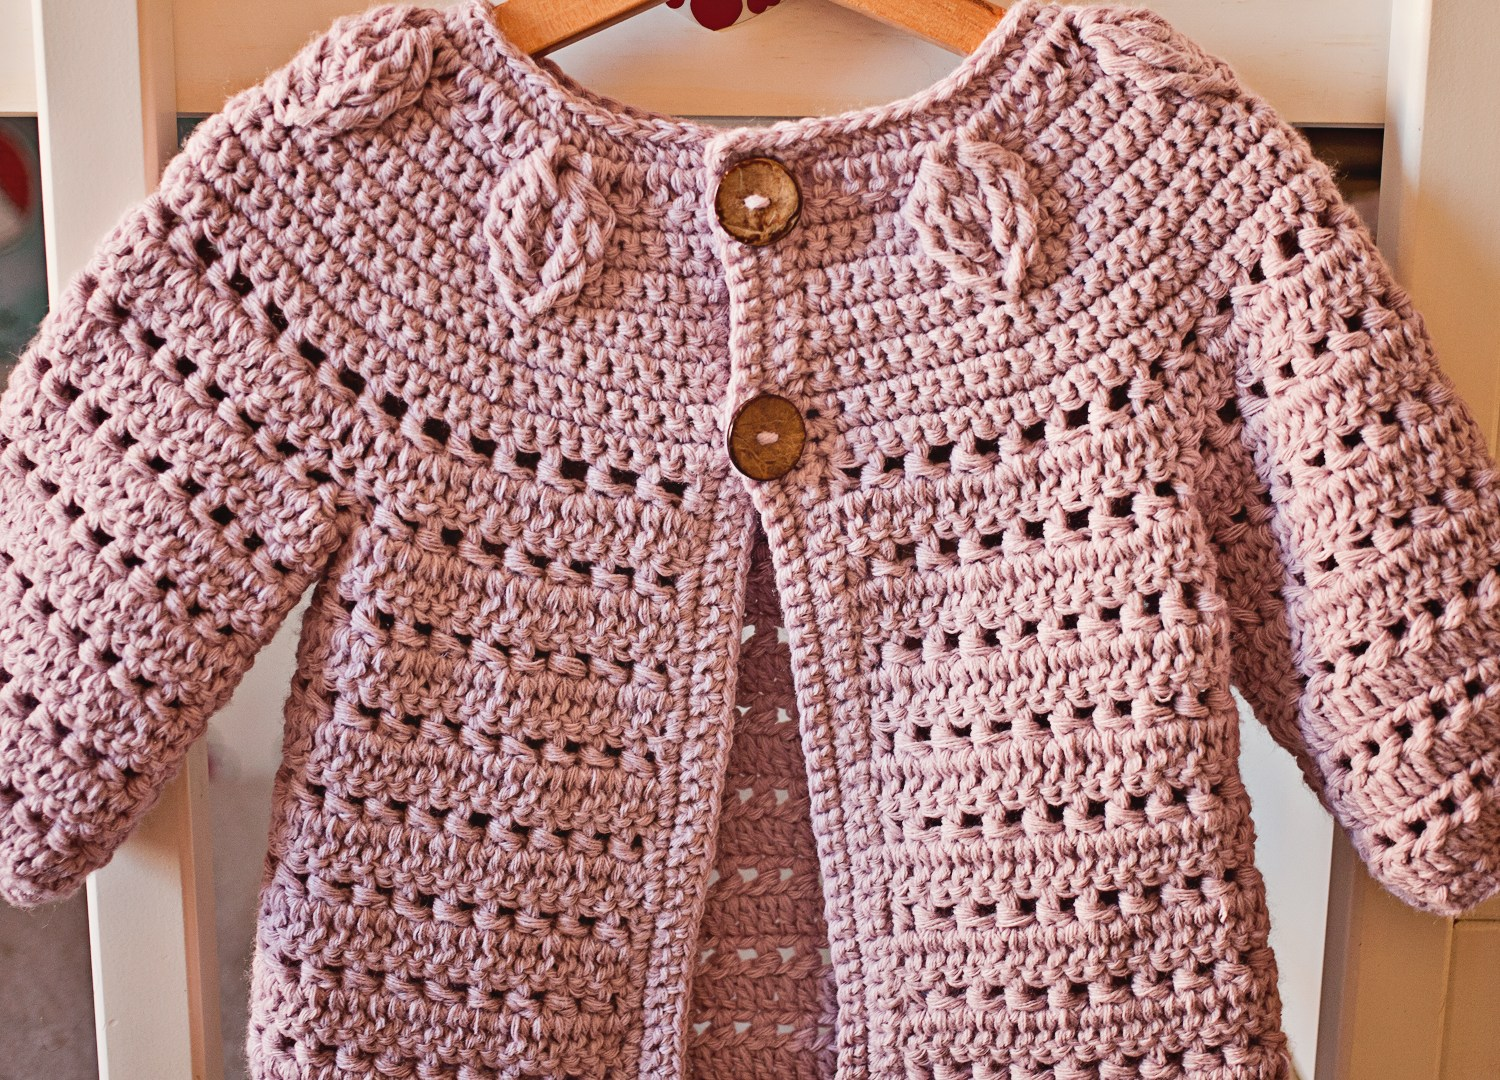 Crochet version of a knit pattern!